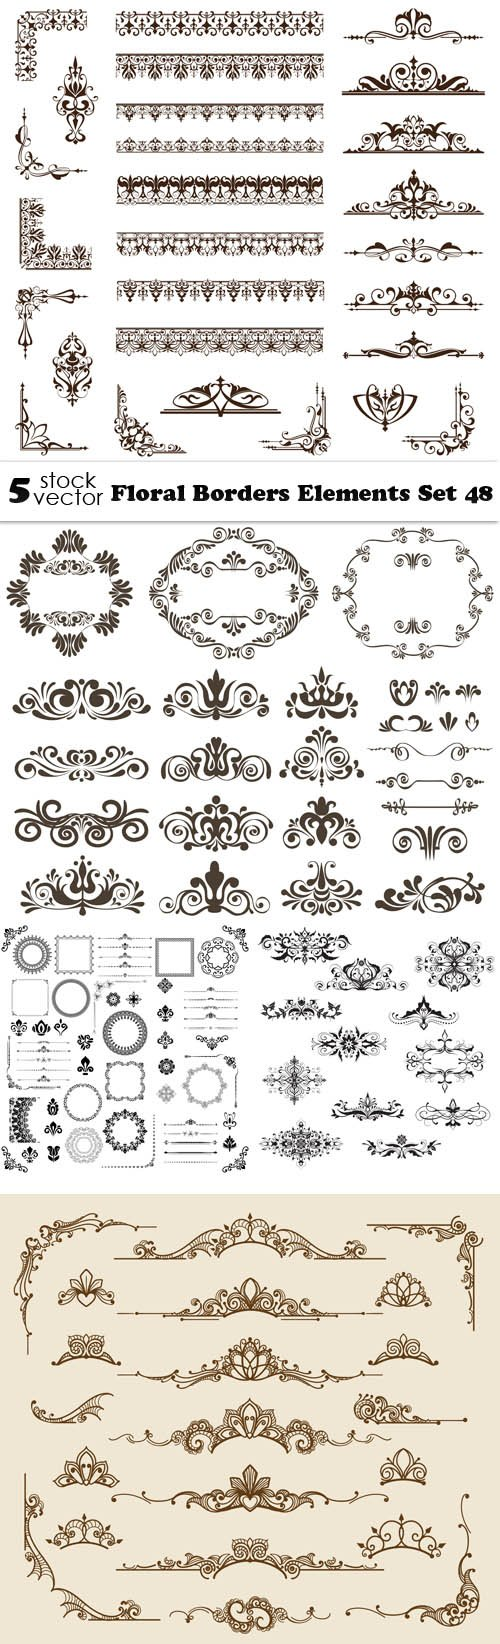 Vectors - Floral Borders Elements Set 48